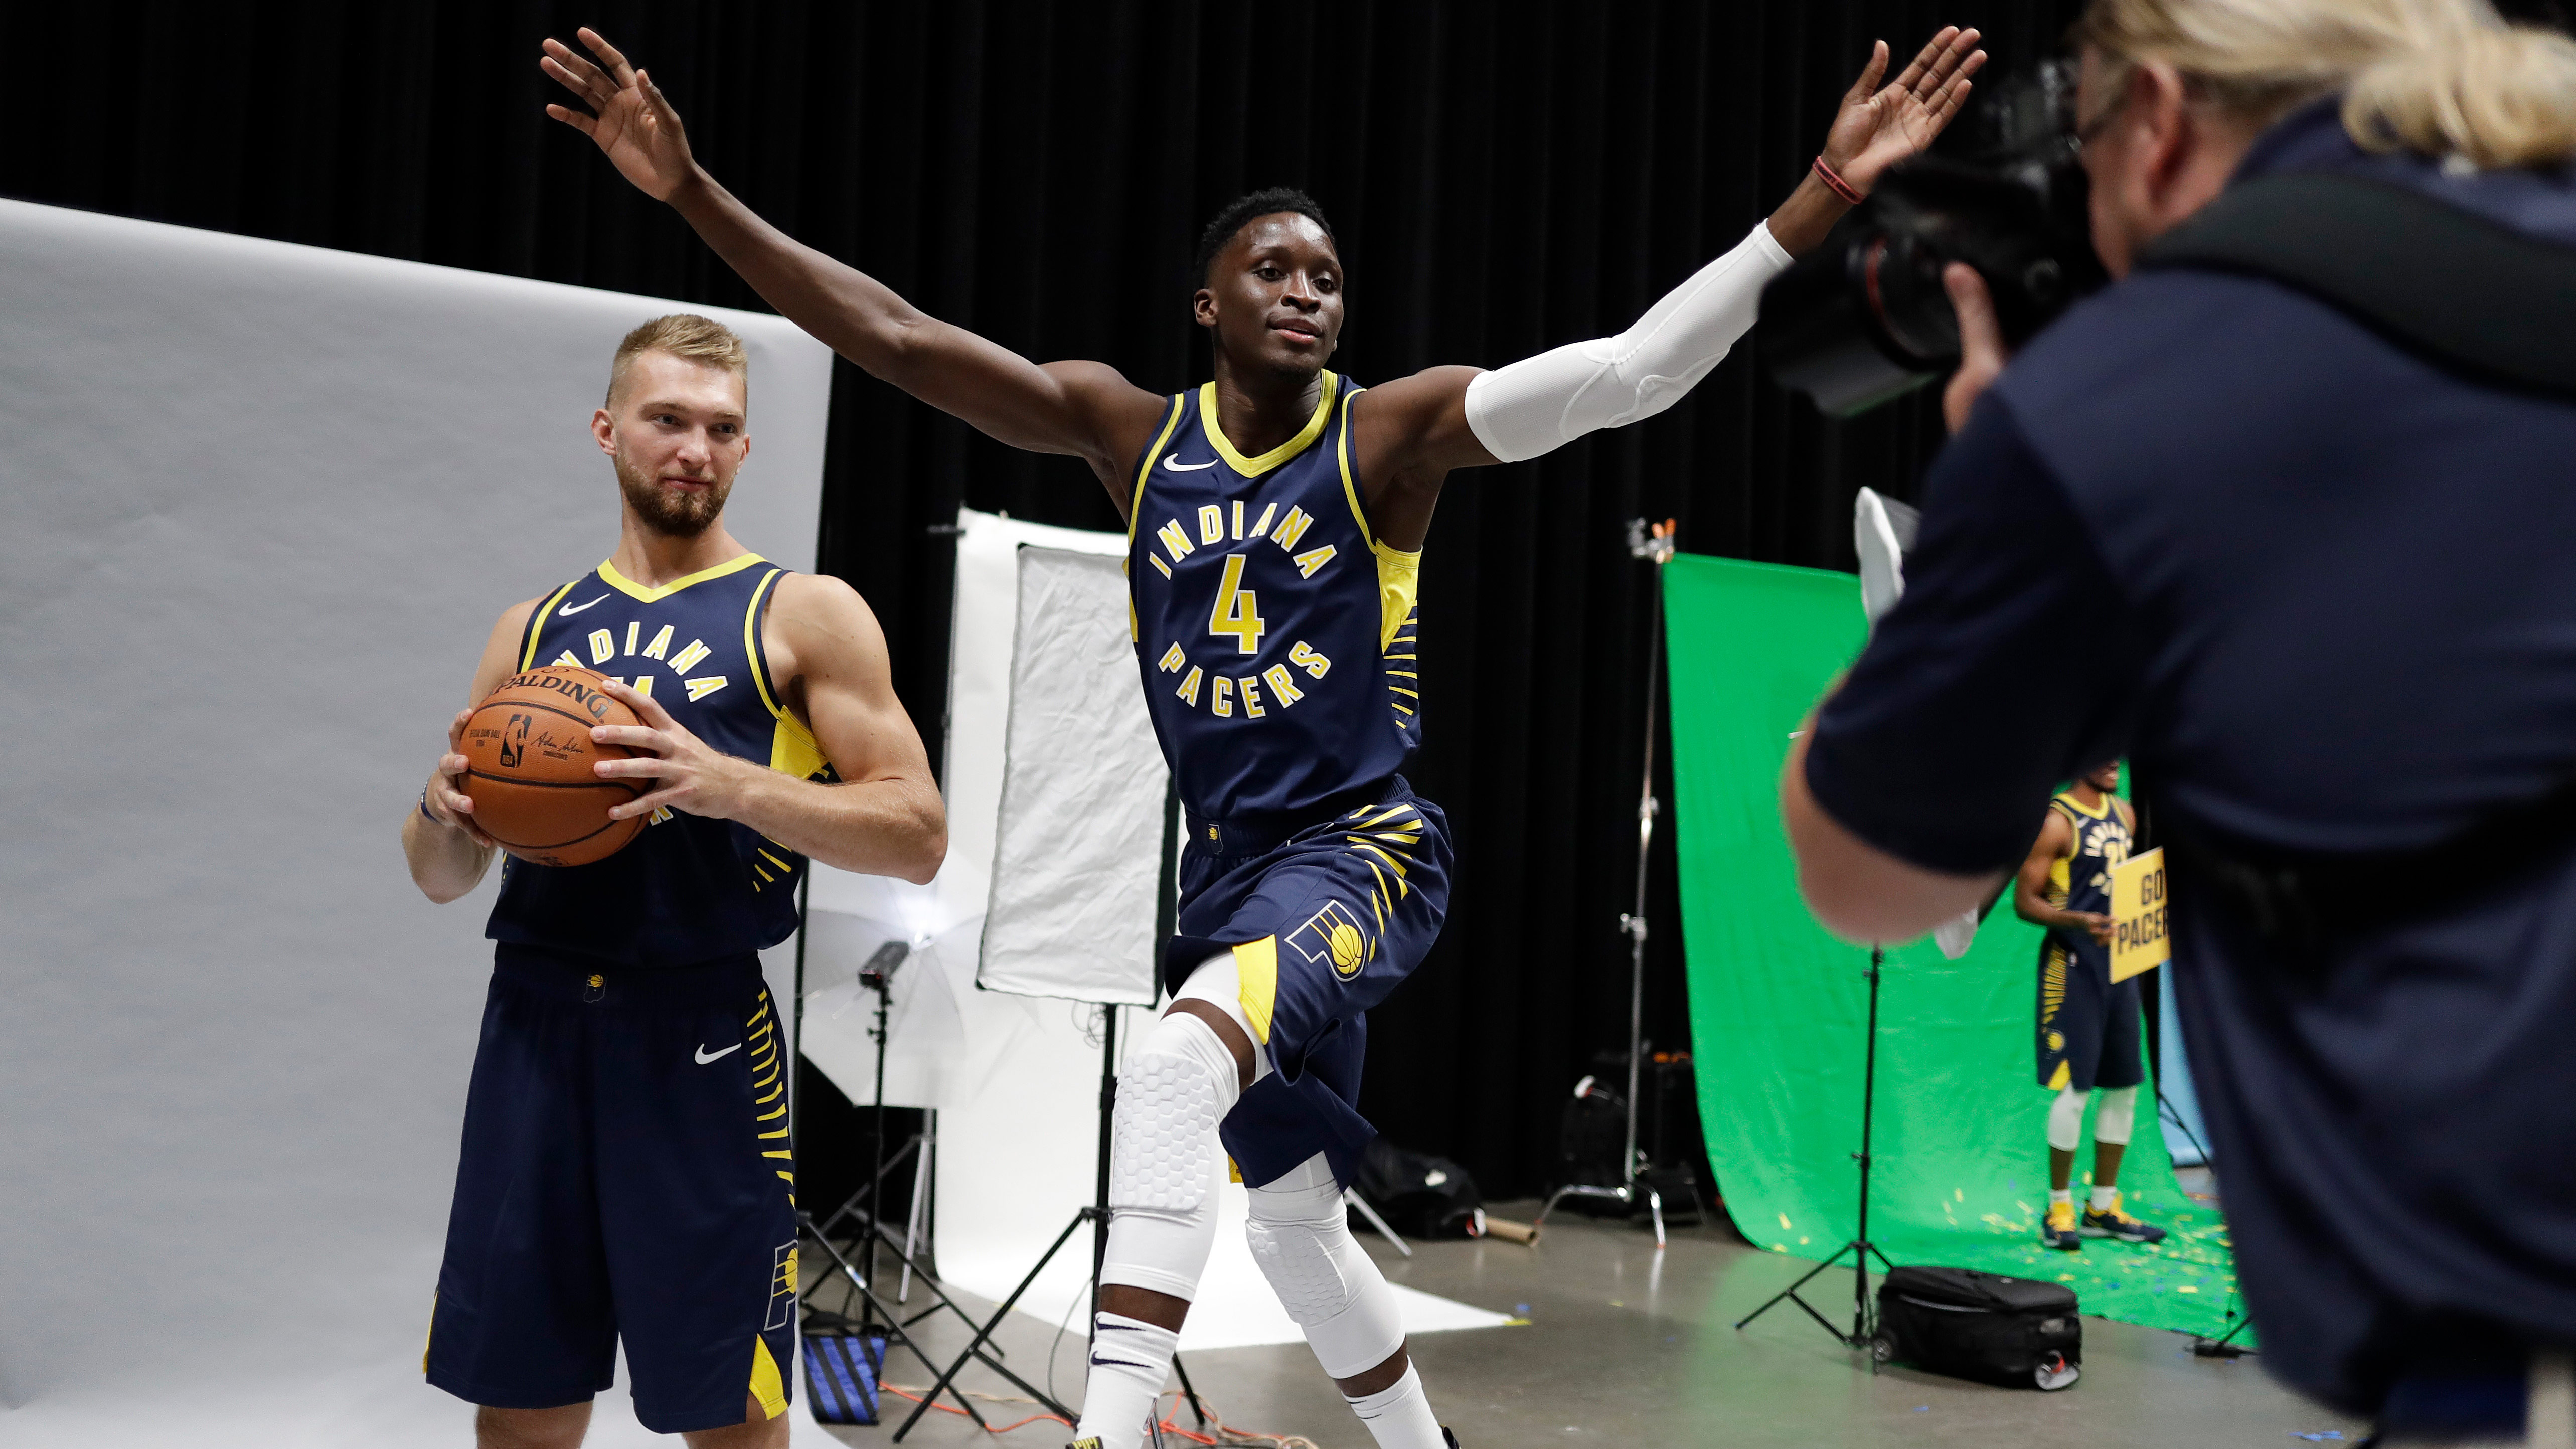 Indiana Pacers' Victor Oladipo (4) jumps into a photo of Domantas Sabonis that is being taken by Trevor Ruszkowski during media day at the NBA basketball team's practice facility, Monday, Sept. 24, 2018, in Indianapolis. (AP Photo/Darron Cummings)